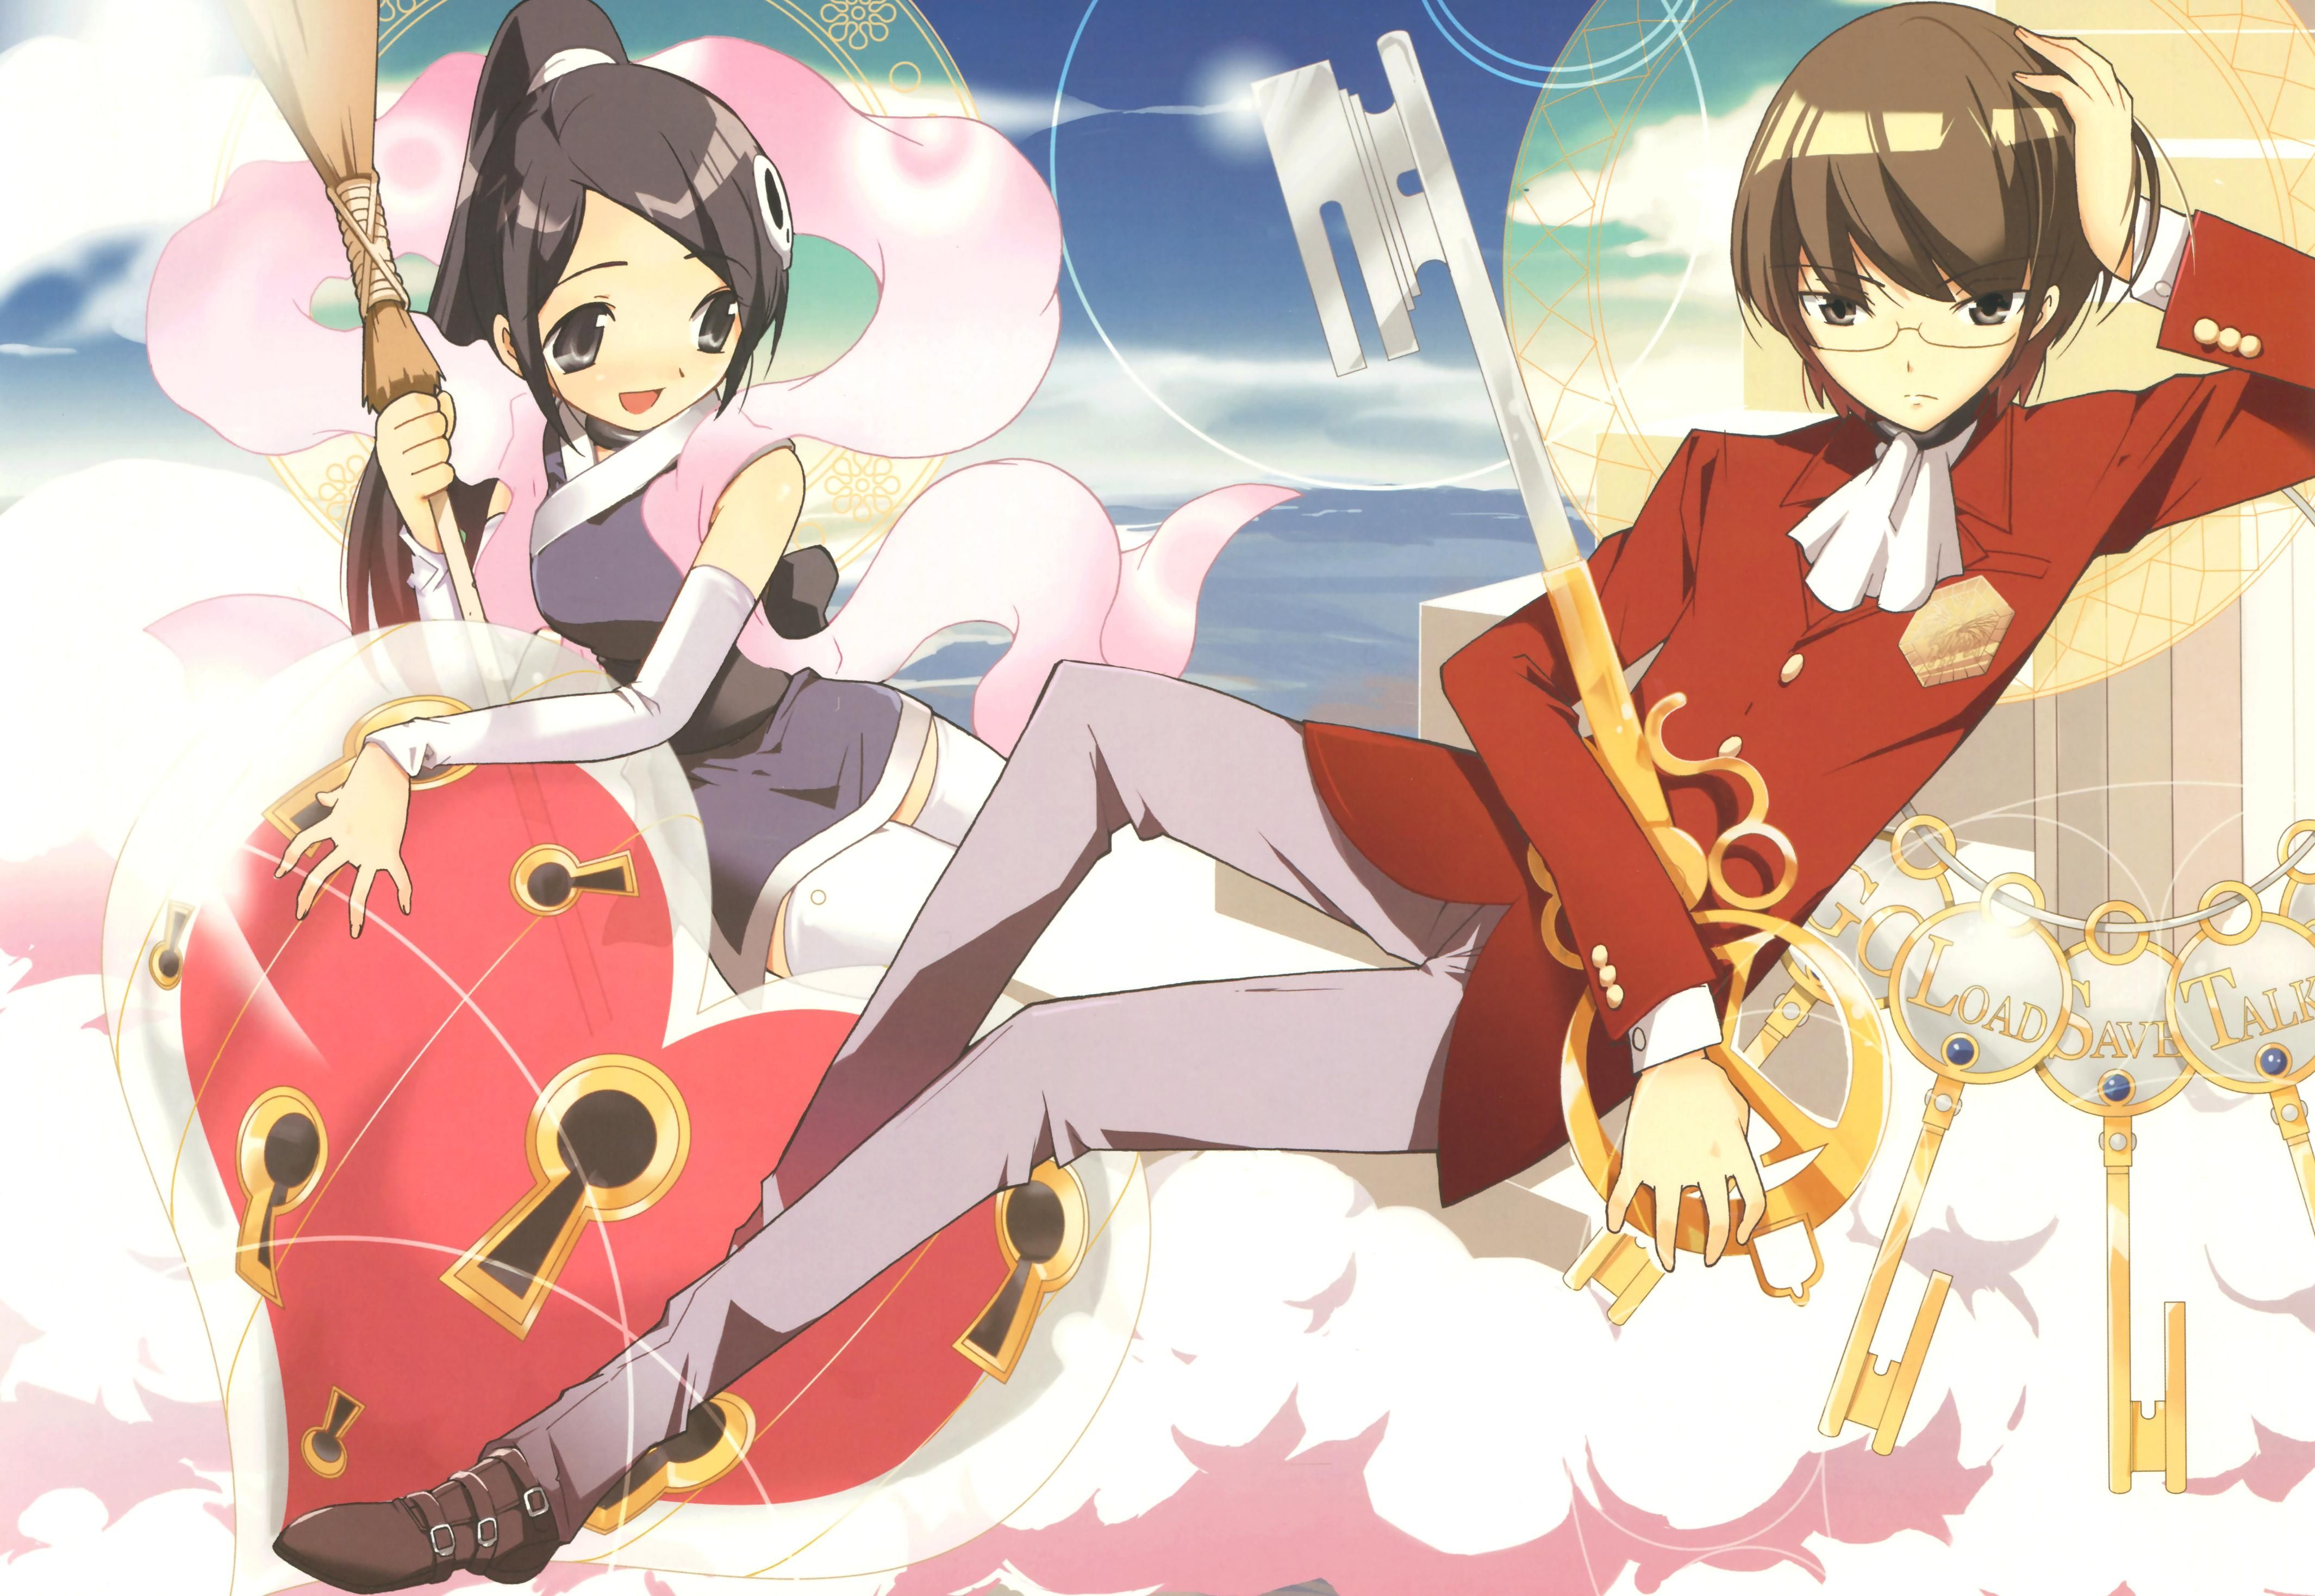 The World God Only Knows Vs the world, Kami, Anime